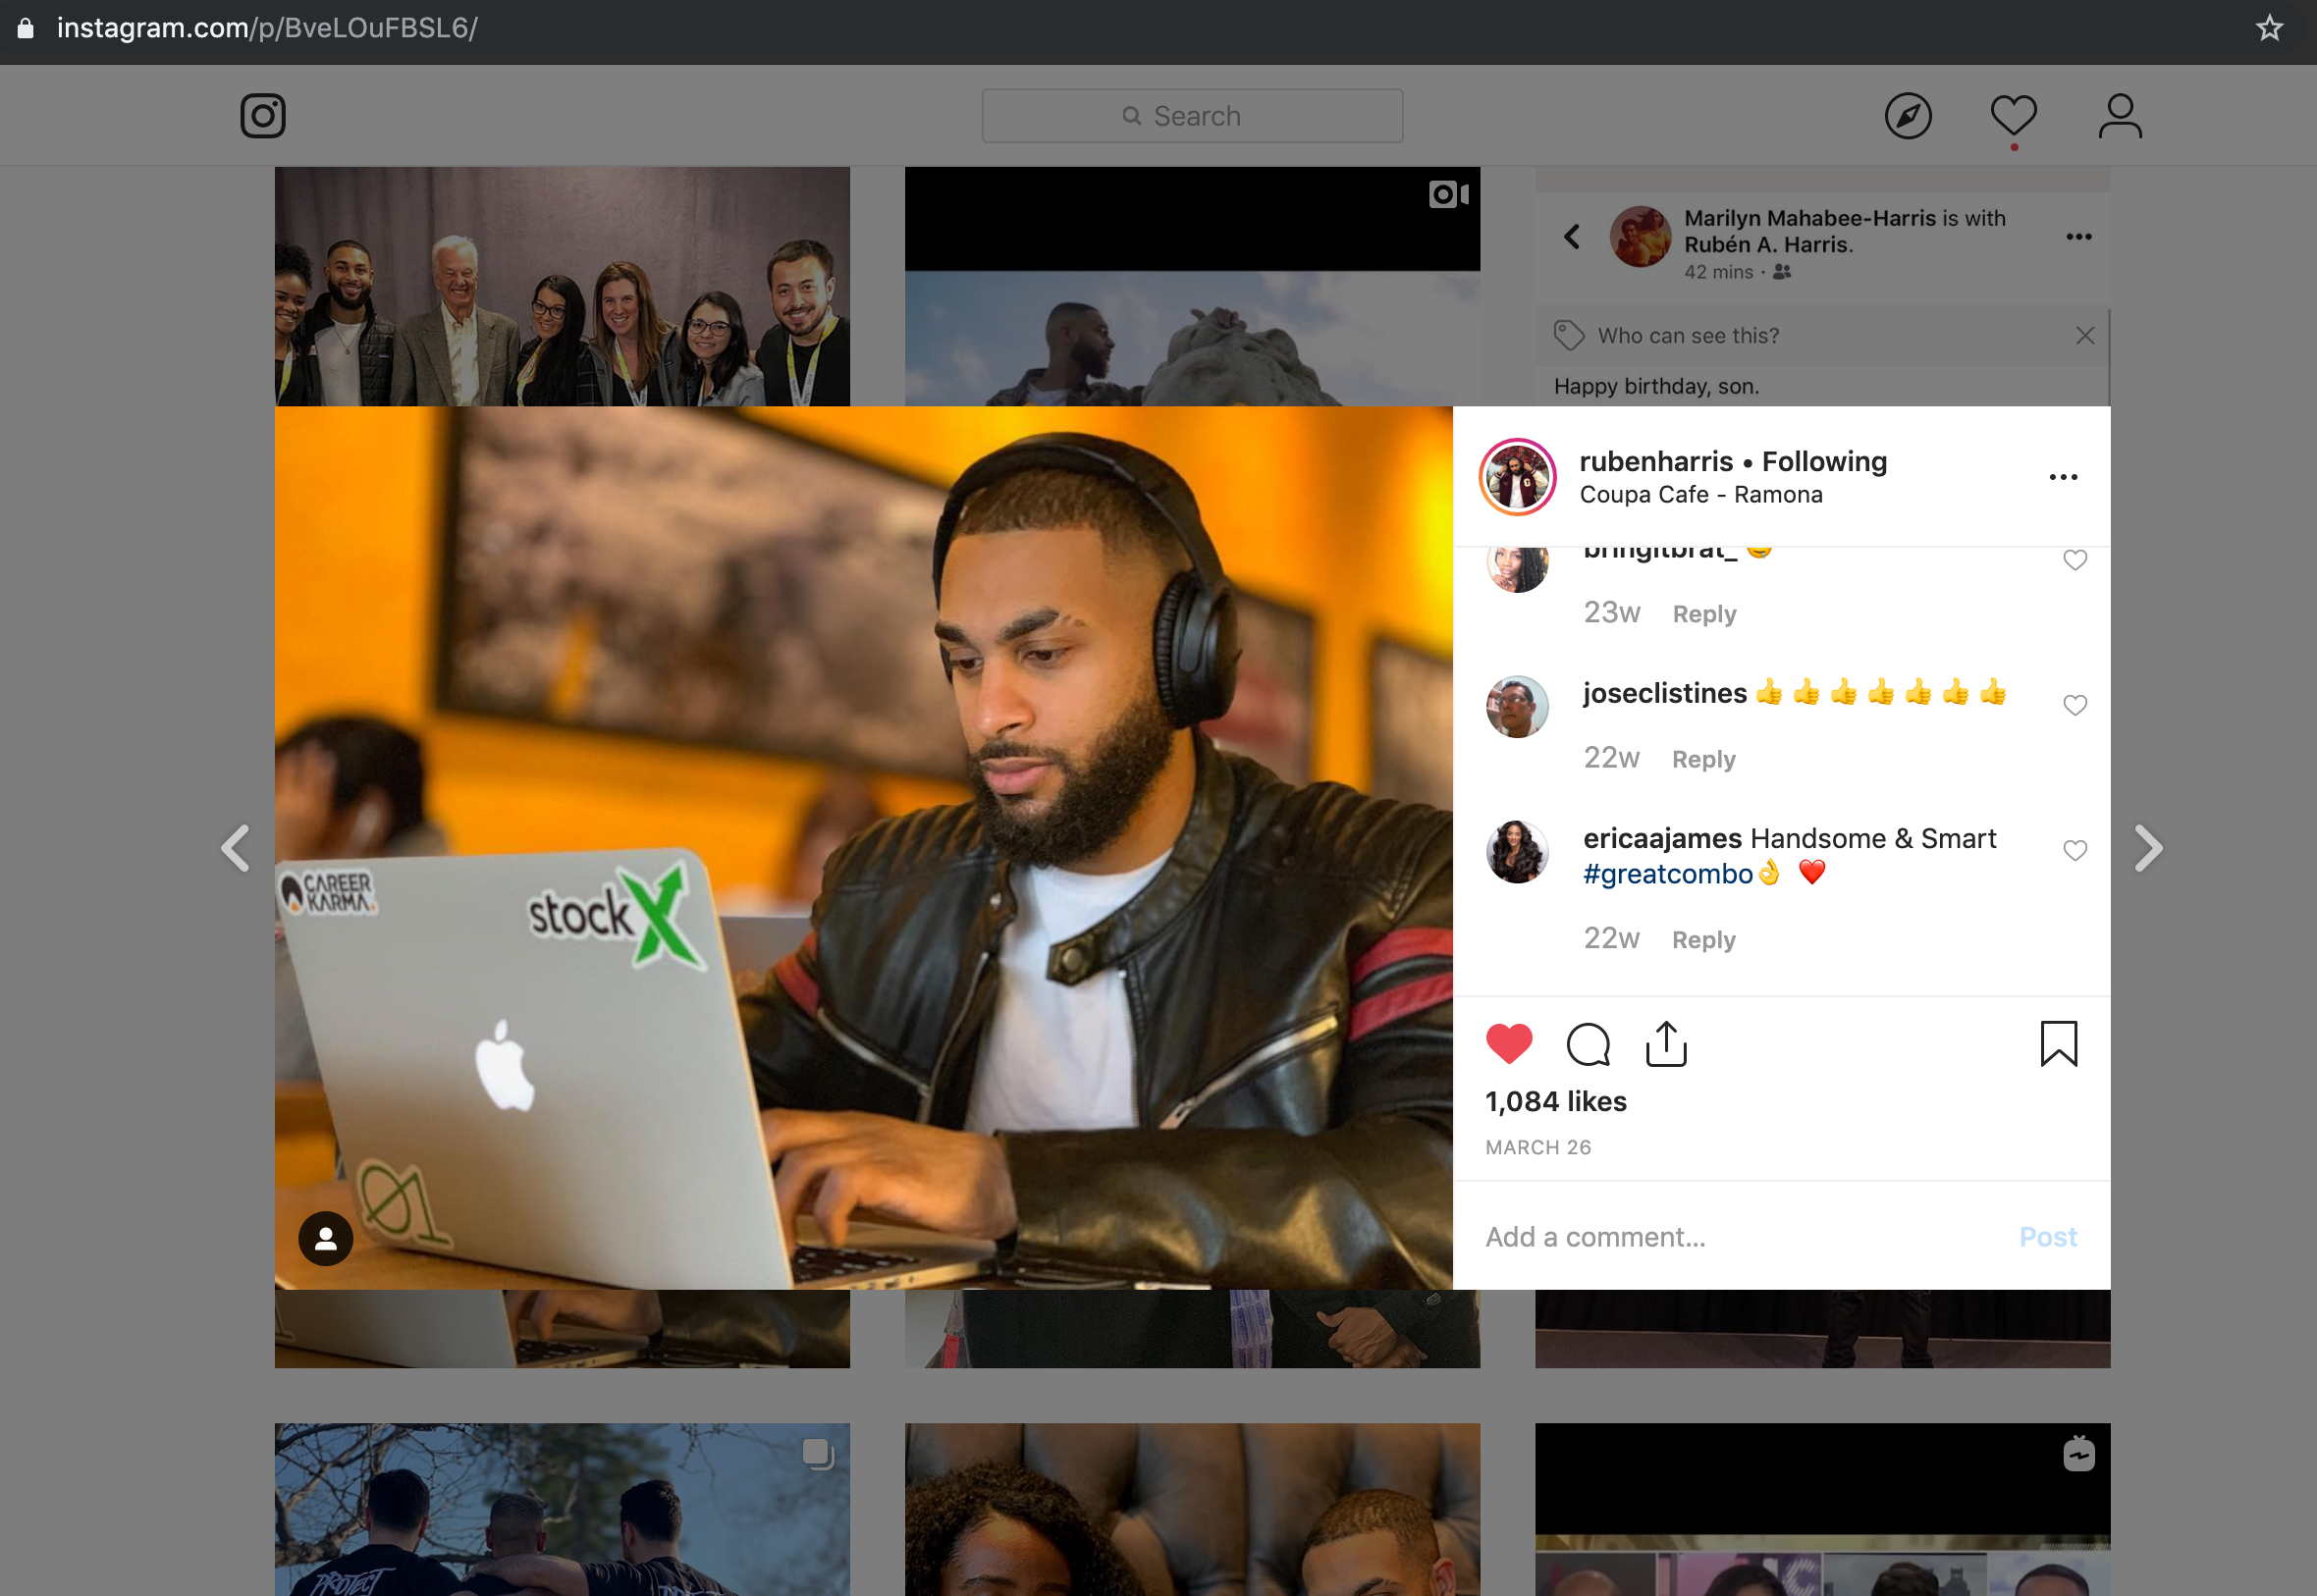 How To Download Instagram Photos Save Images To Your Pc Or Mac From Chrome With No Tools Necessary